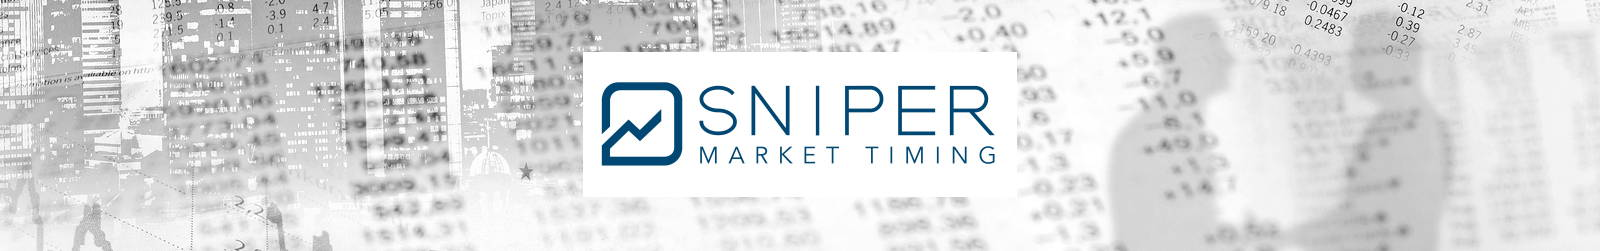 Sniper Market Timing Newsletter